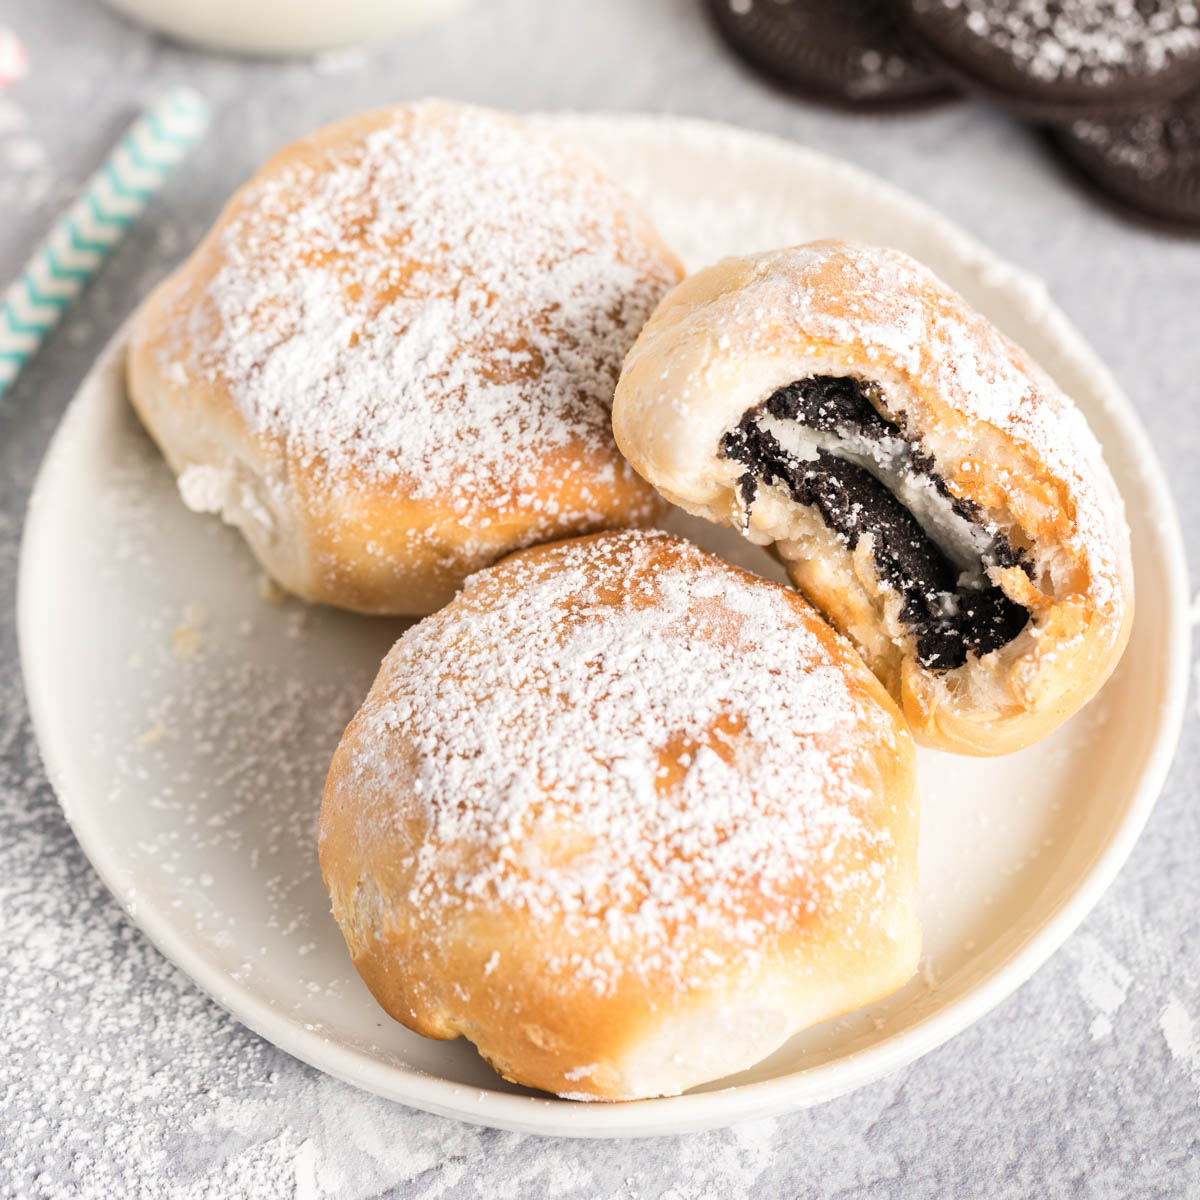 Three air fried Oreos dusted with powdered sugar on a plate.